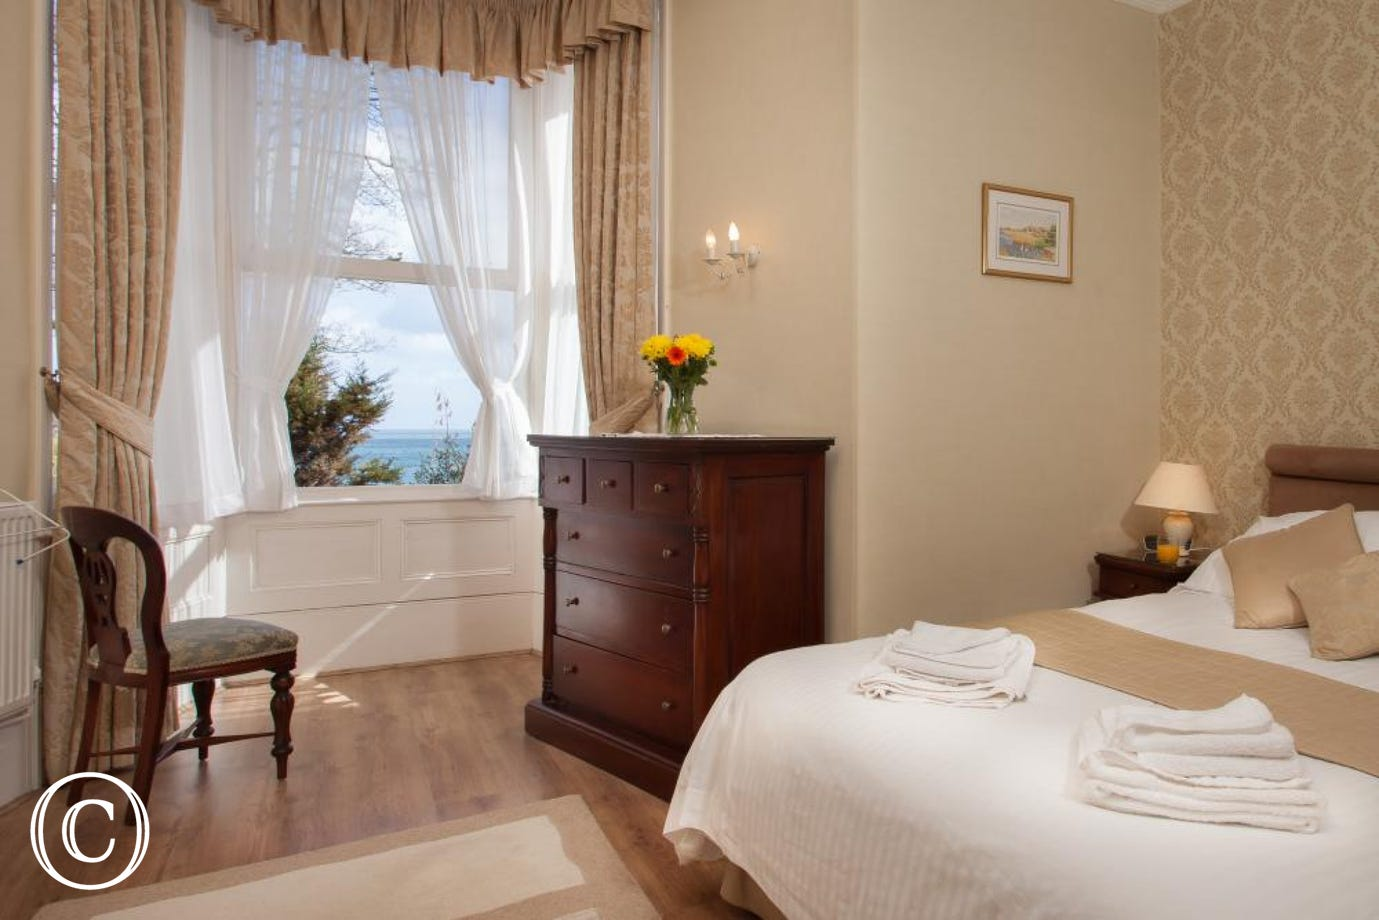 Meadfoot Beach Apartment, Torquay - Bedroom